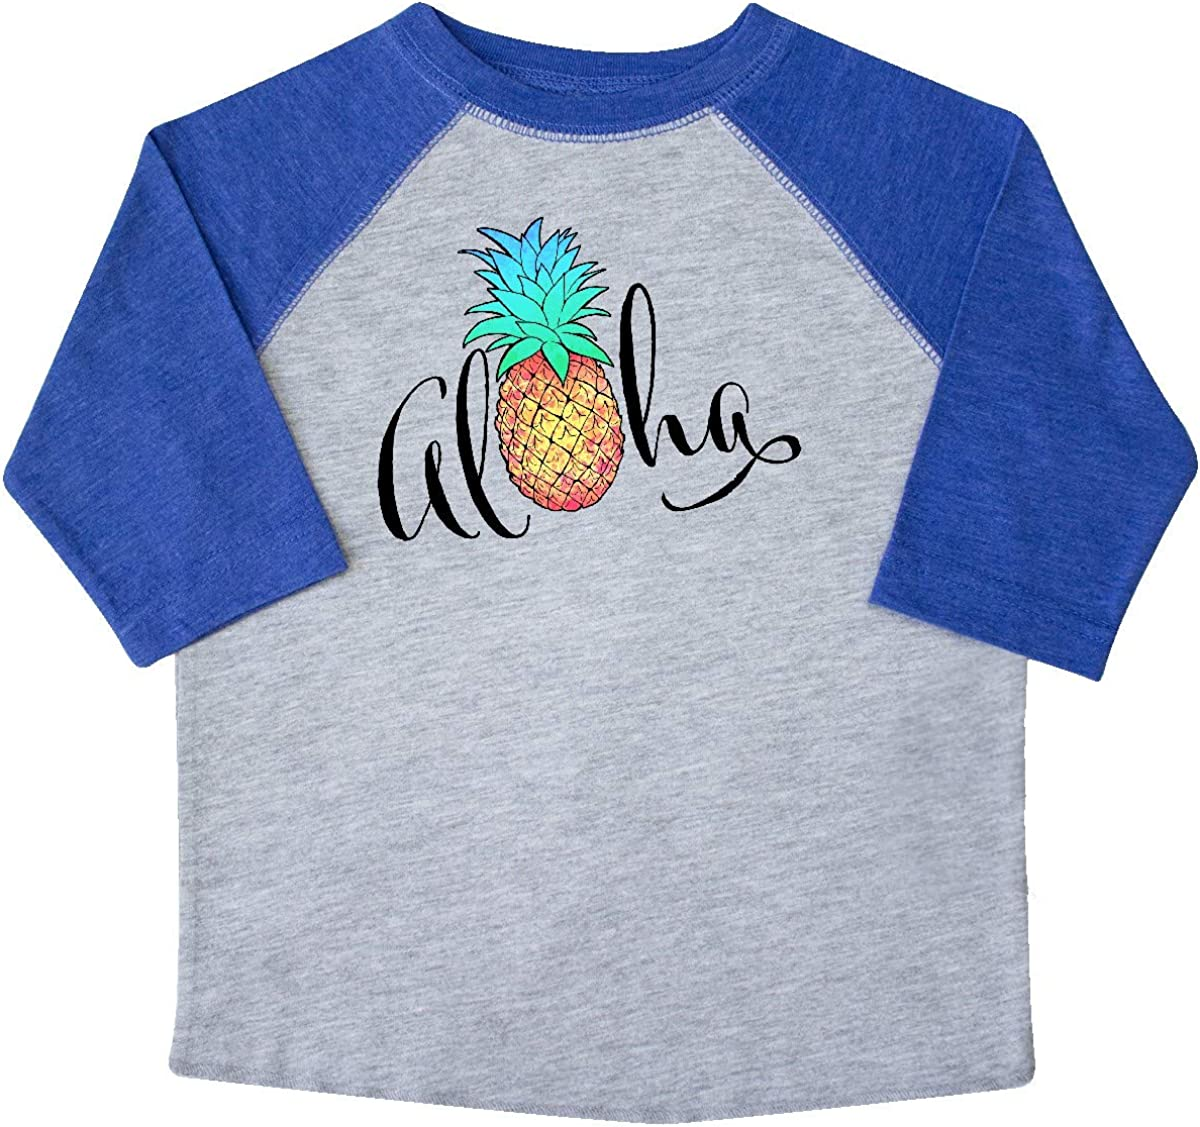 in Cursive with Pineapple Rainbow Colors Toddler T-Shirt inktastic Aloha